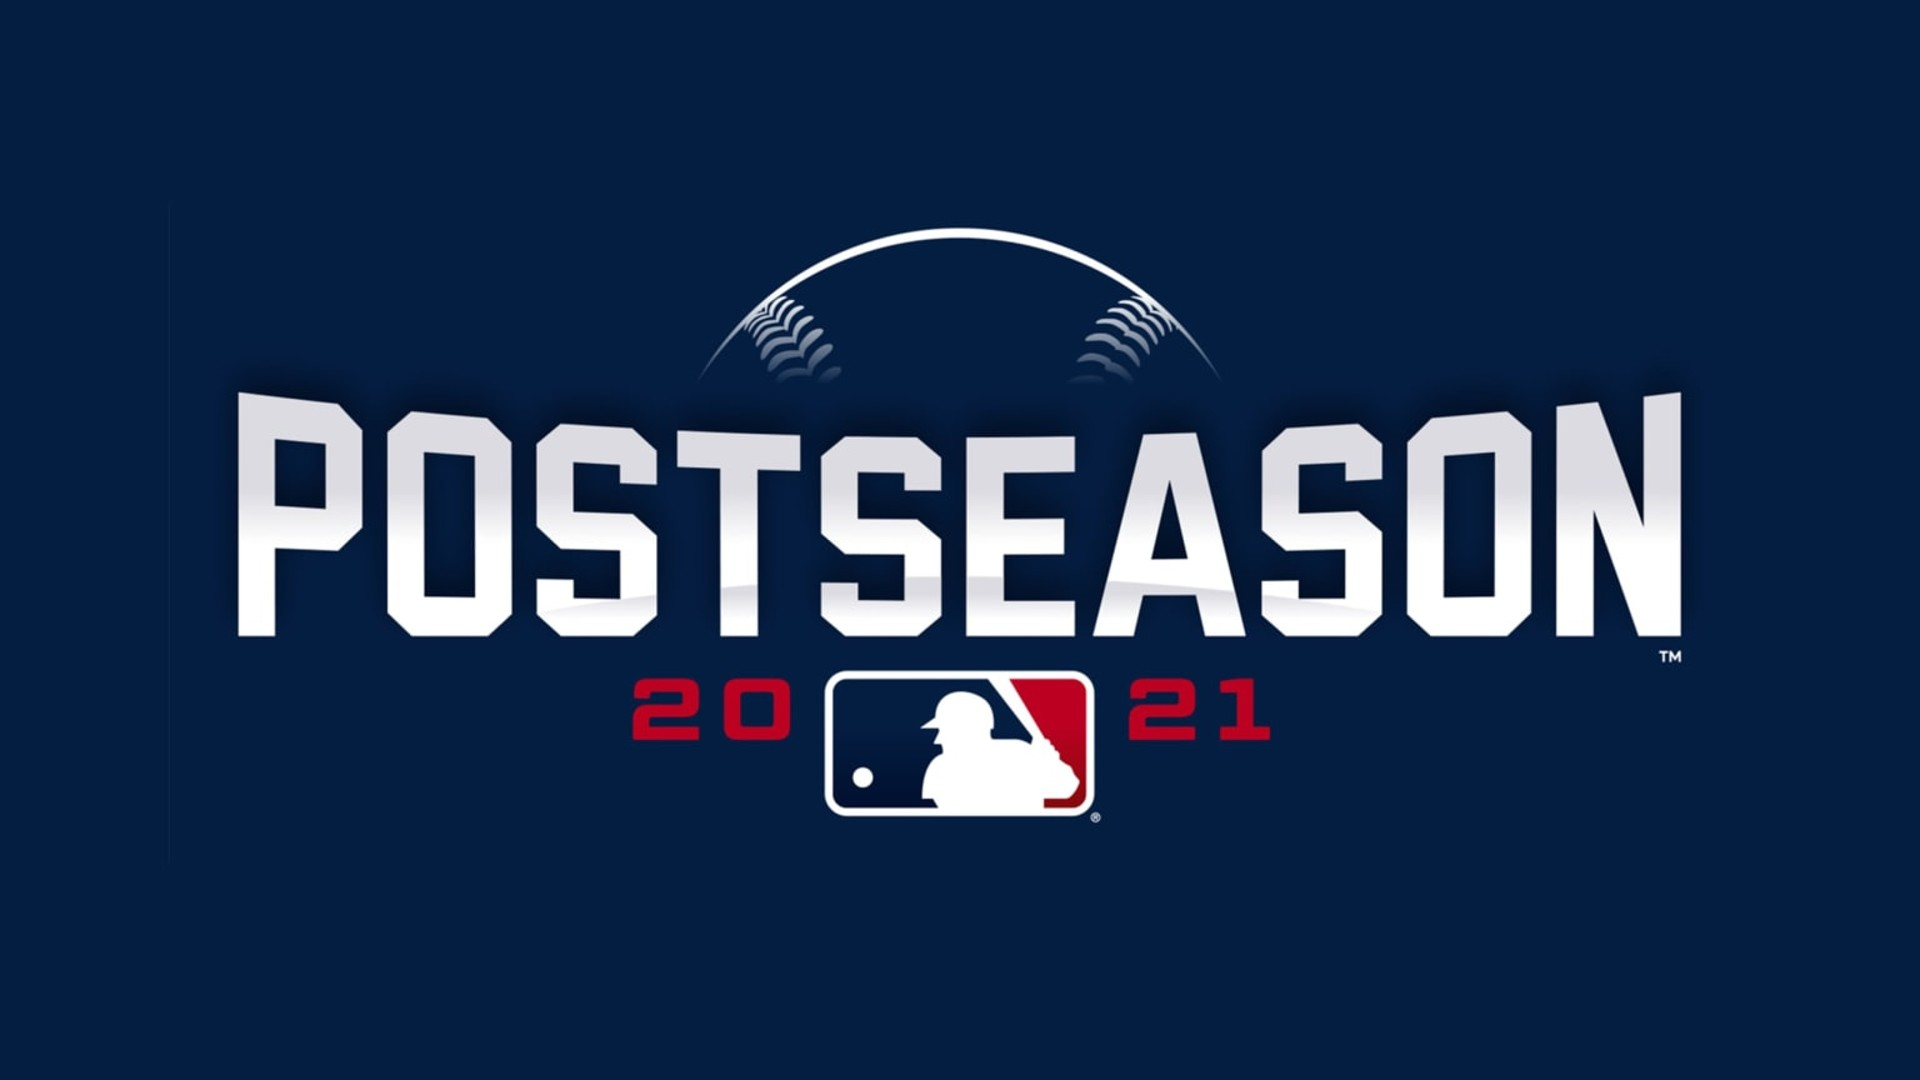 MLB playoff bracket 2021: Updated TV schedule, scores, results for the Division Series